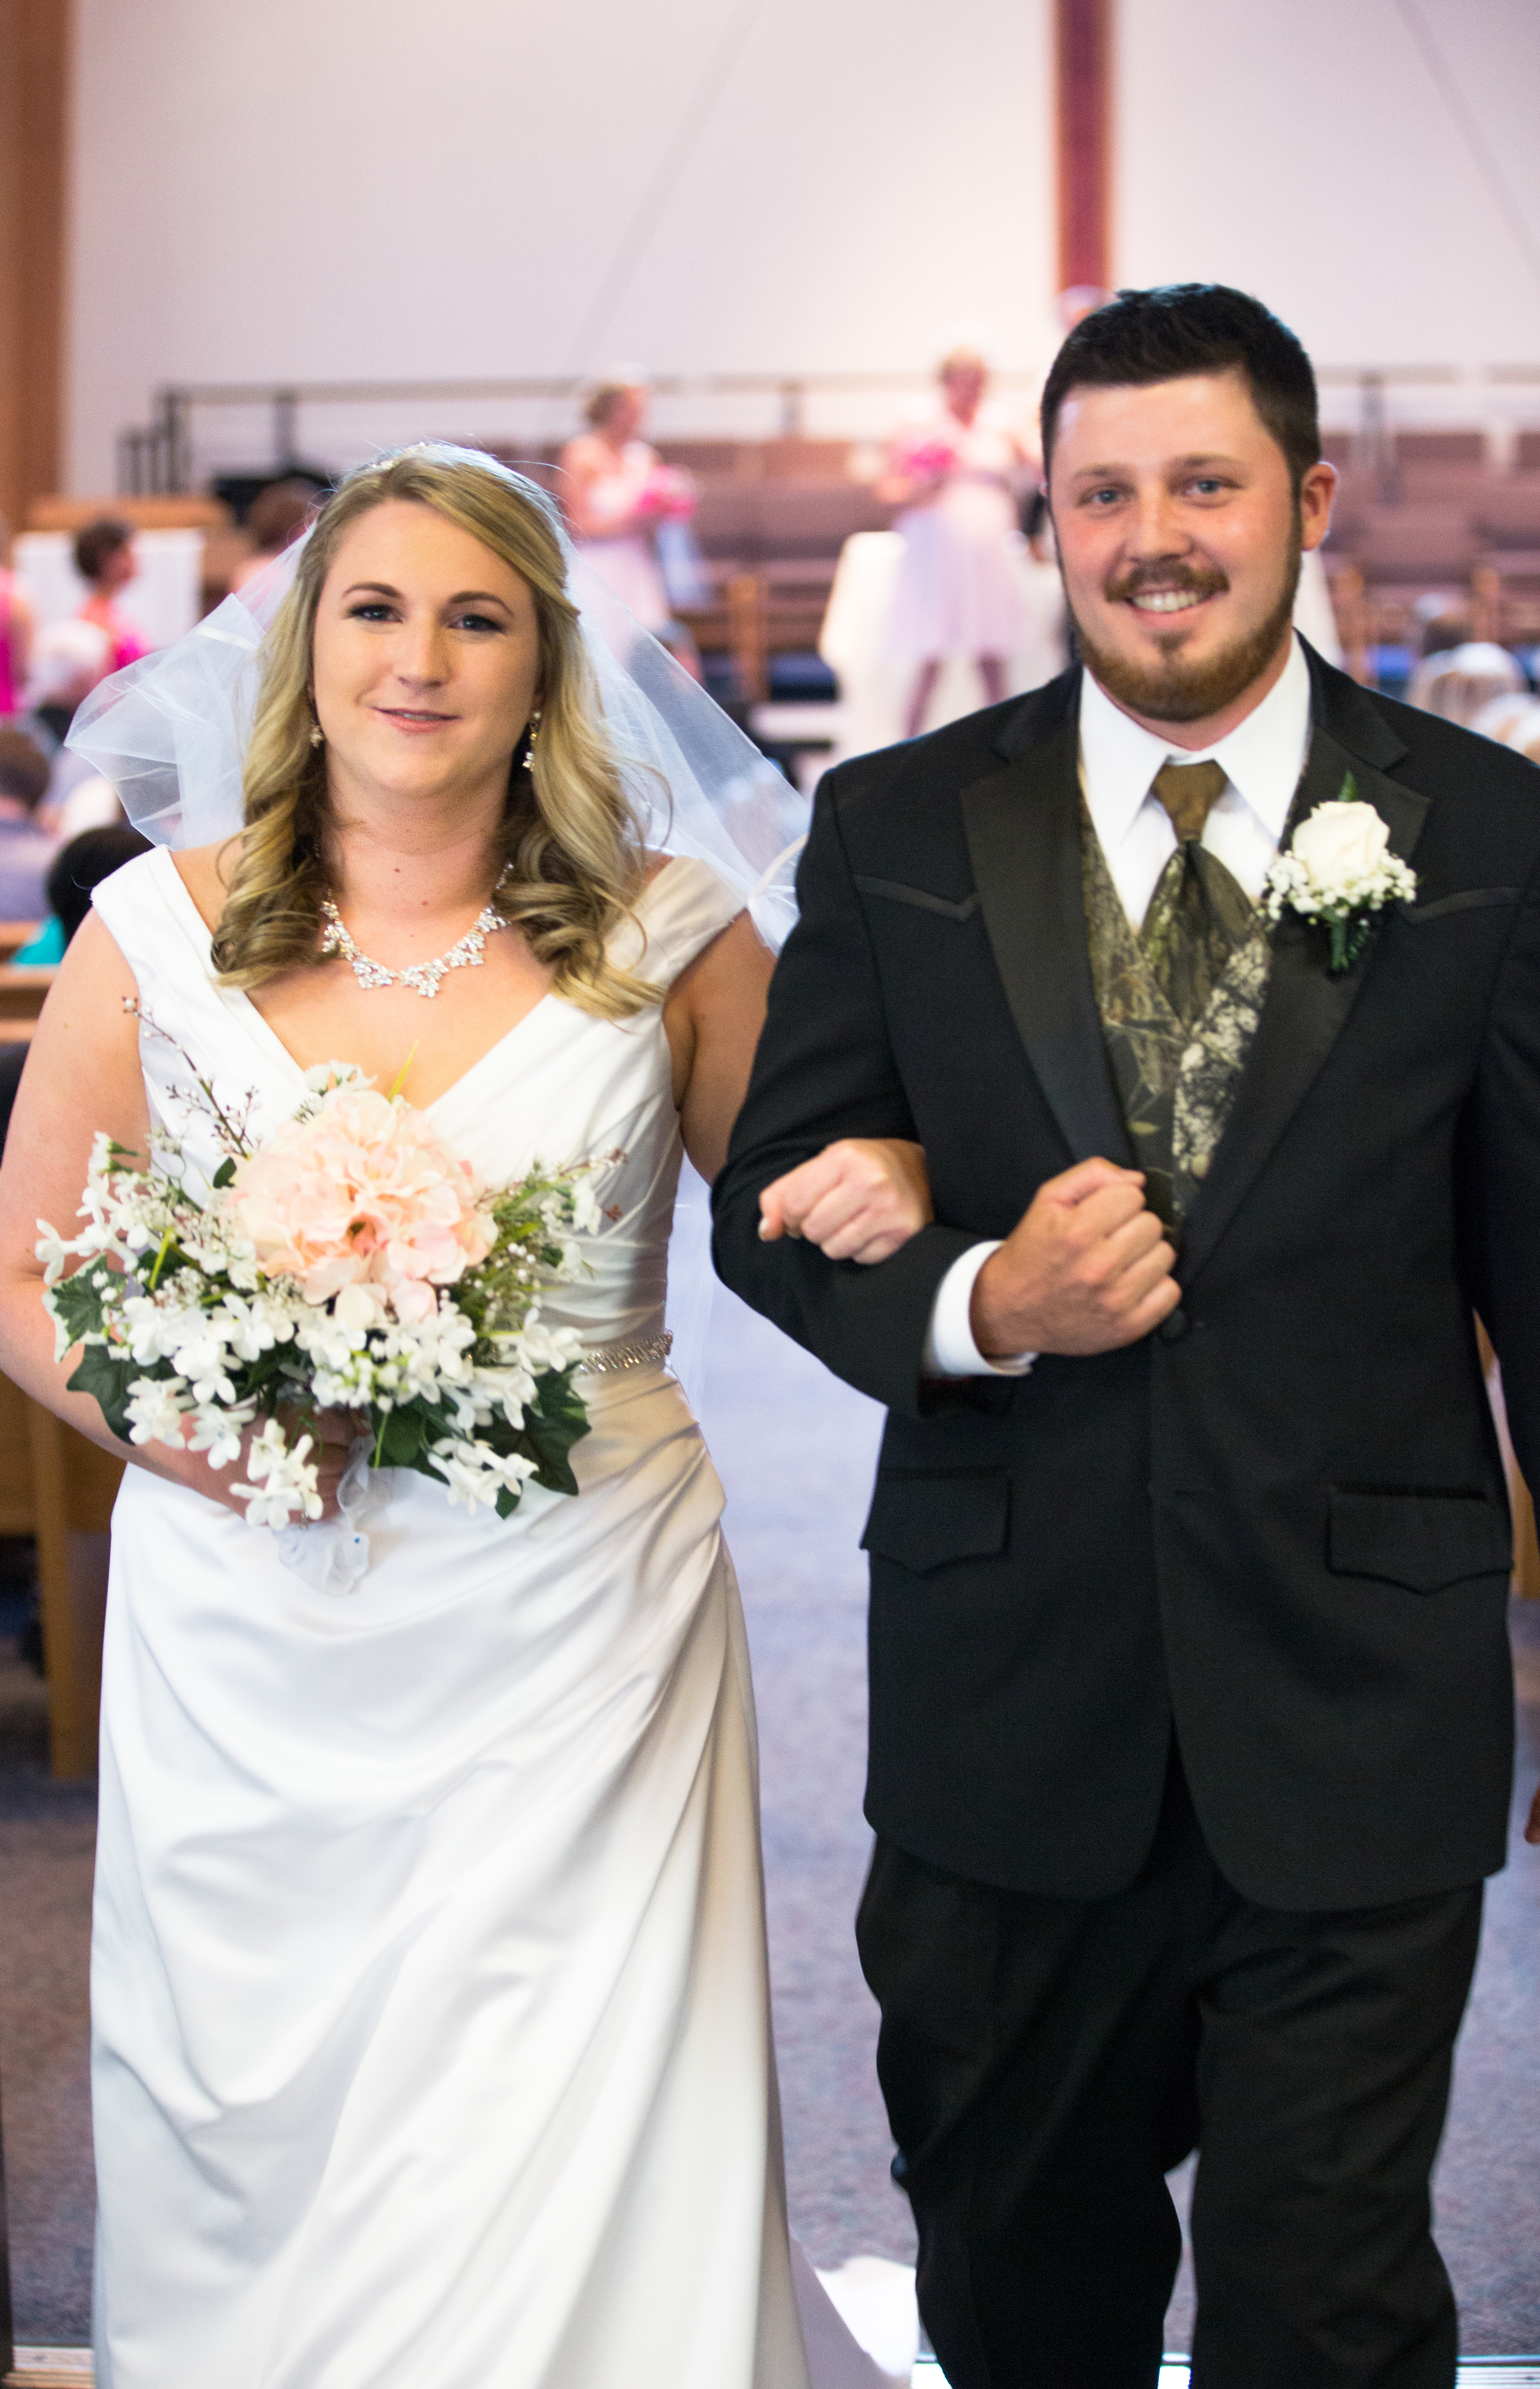 bride_and_groom_leaving_ceremony_synan